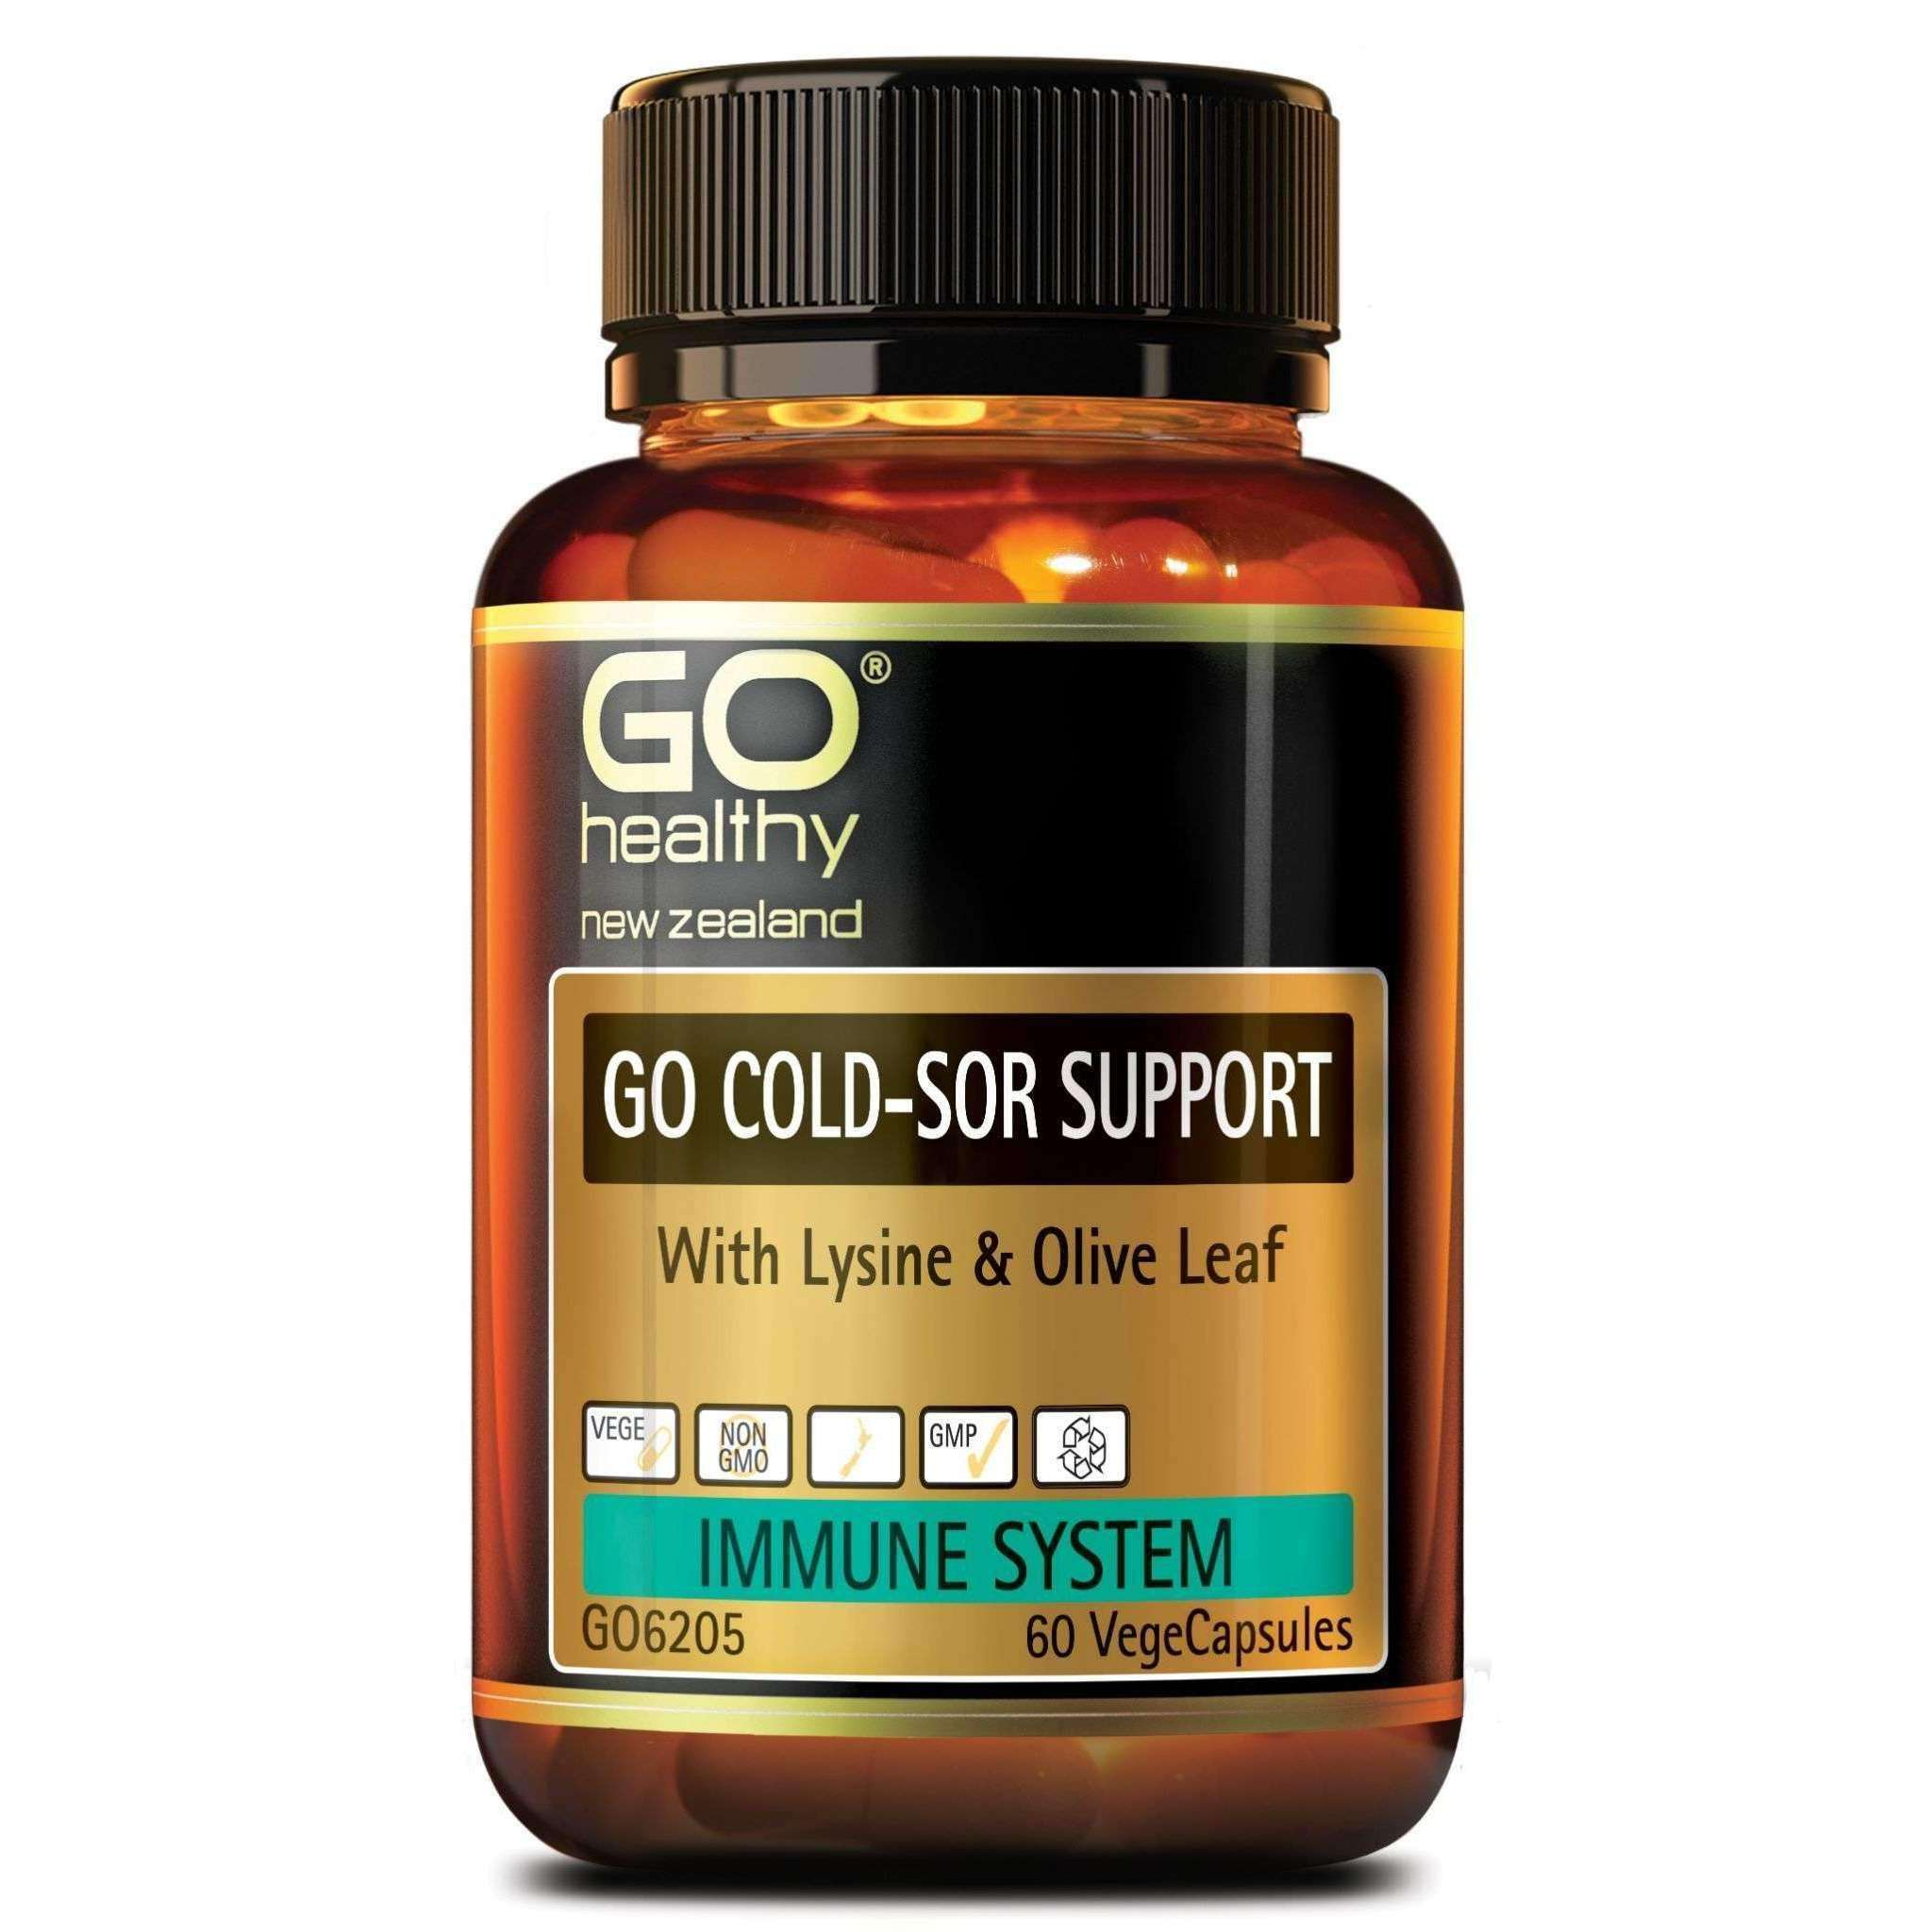 Go Healthy Go Cold-Sor Support